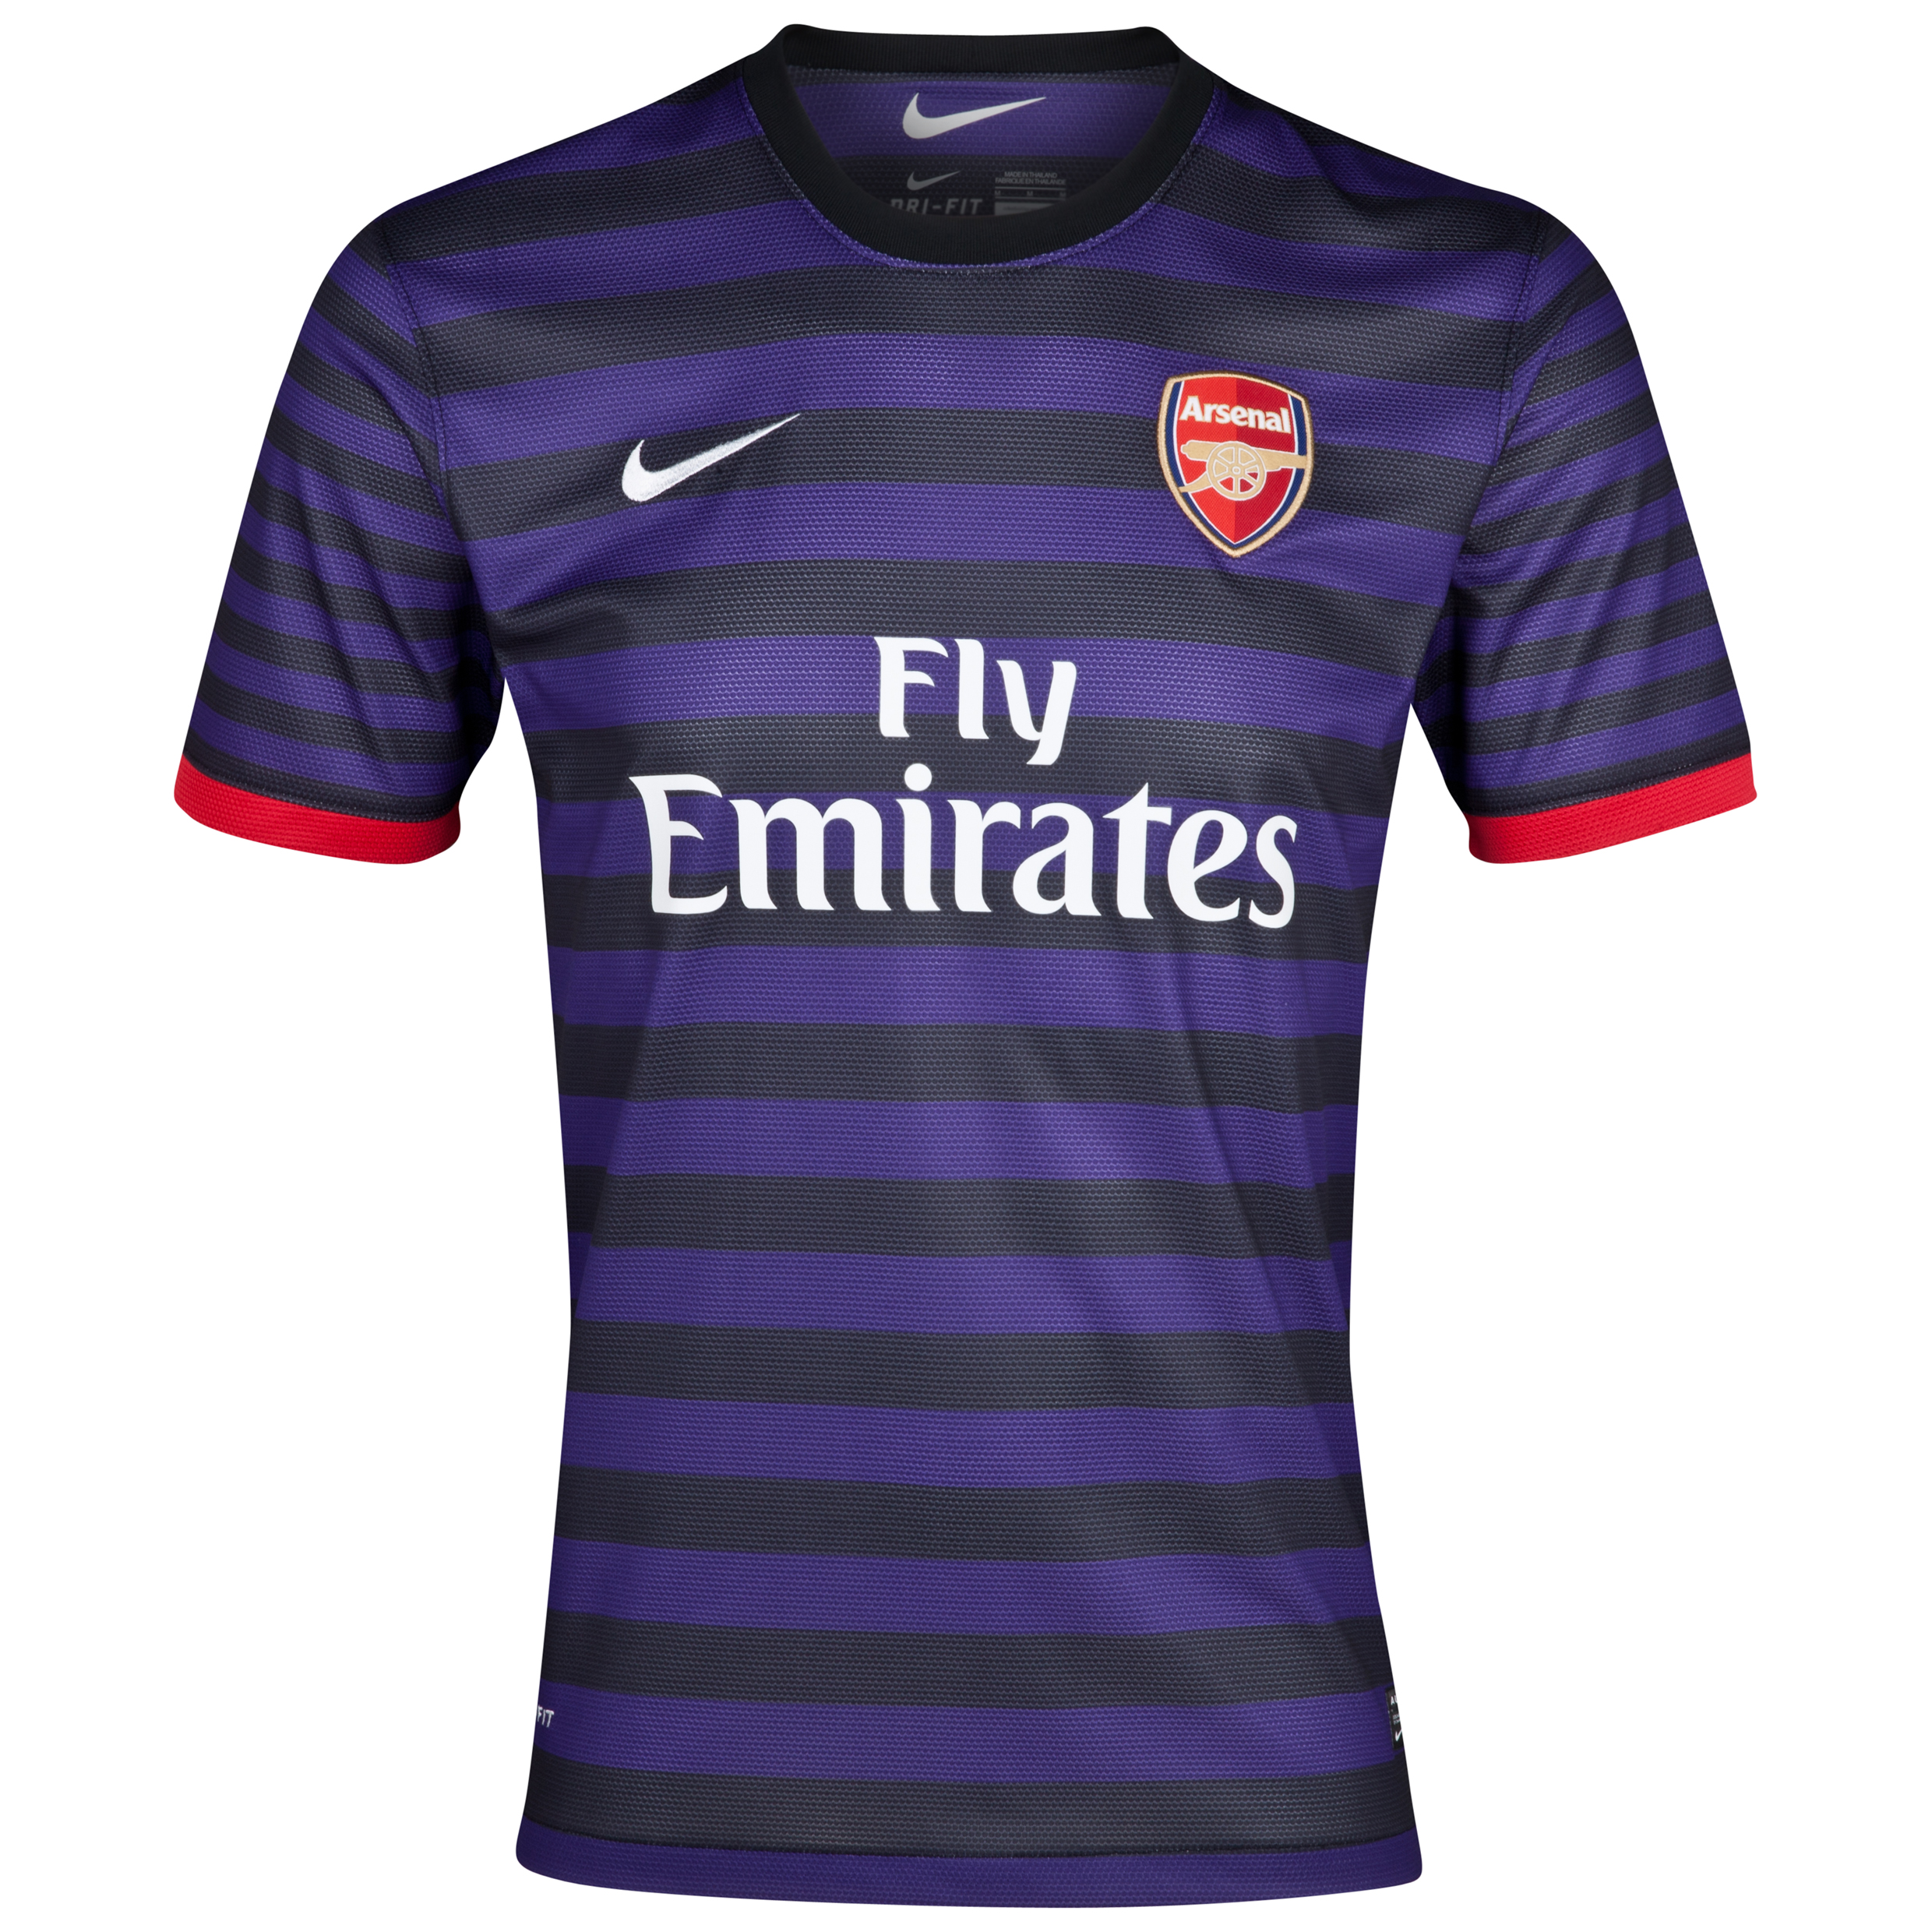 Arsenal Away Shirt 2012/13